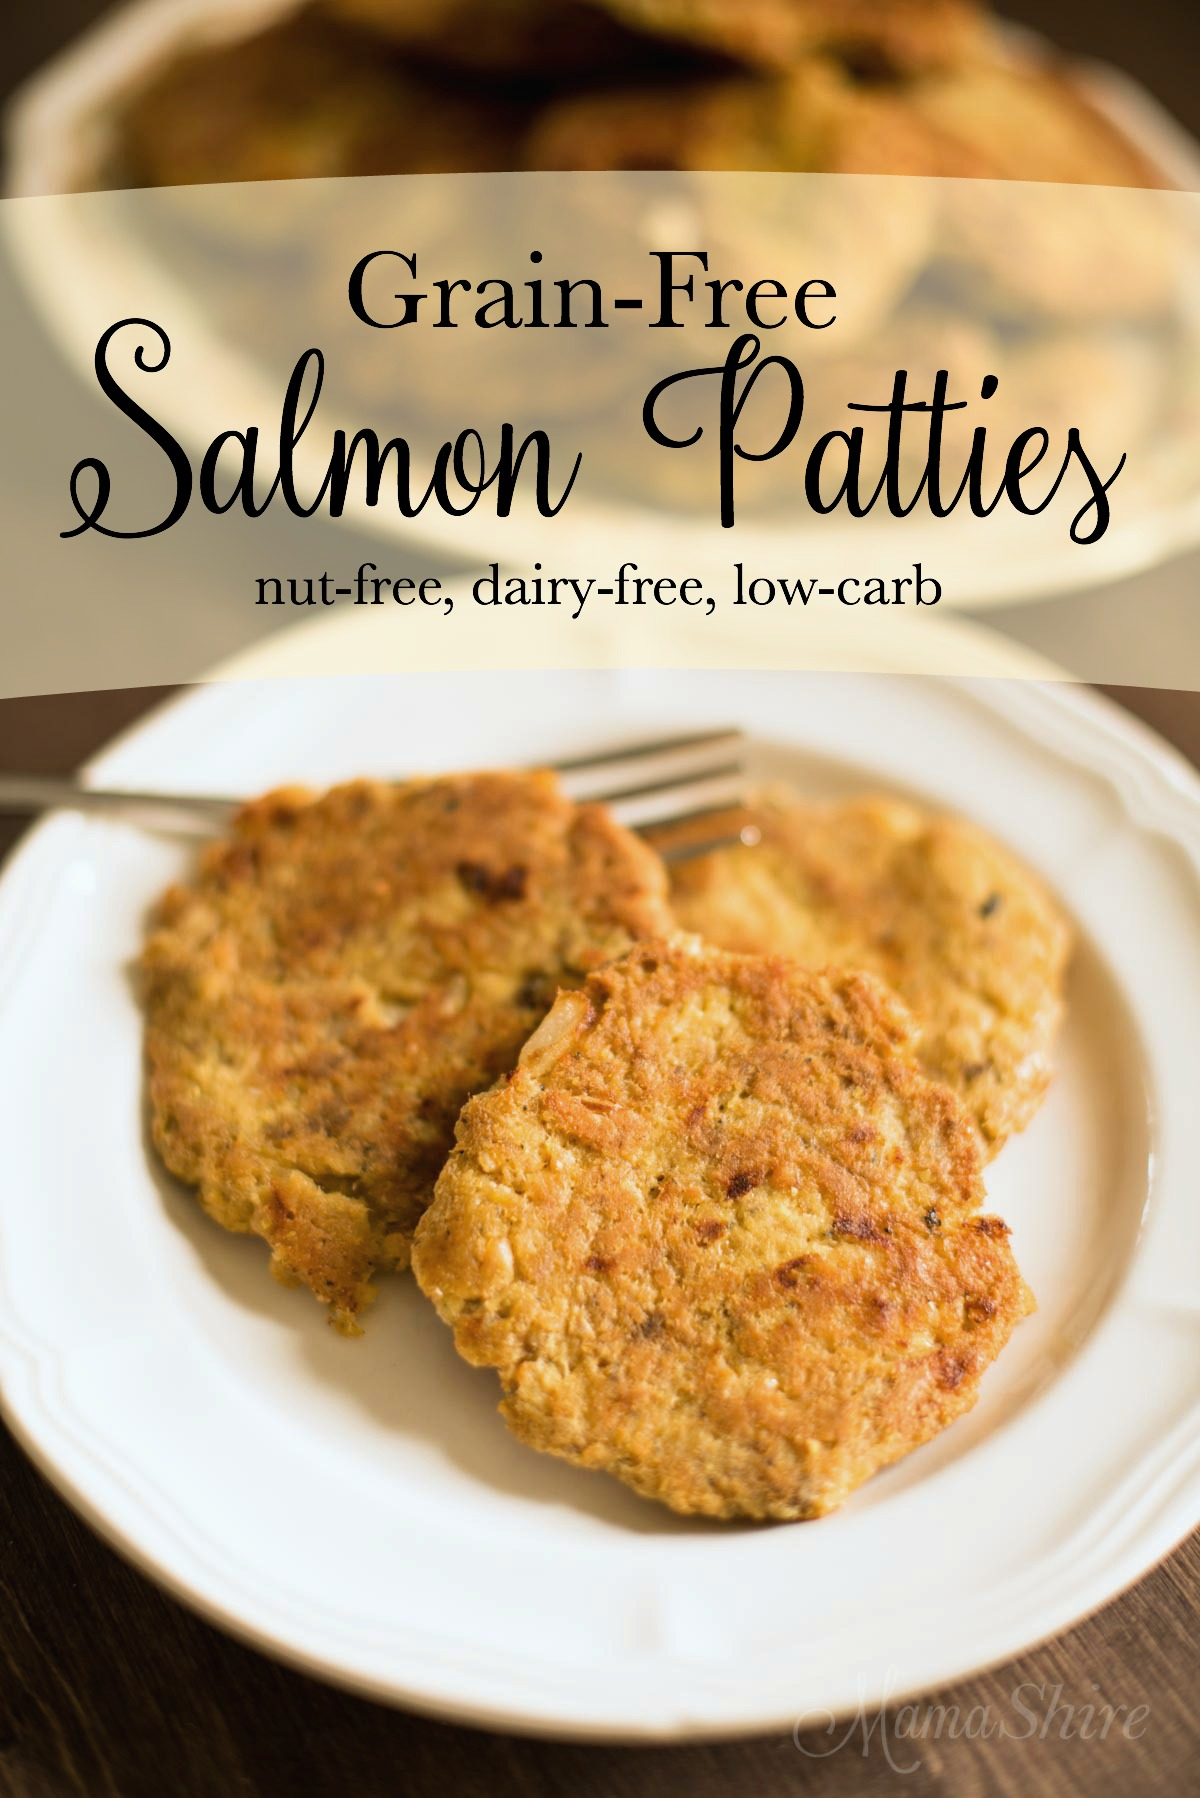 Easy to make grain-free salmon patties. Healthy and tasty! Gluten-free, Dairy-free, Keto, THM-S. #keto #trimhealthymama #grainfree #glutenfree